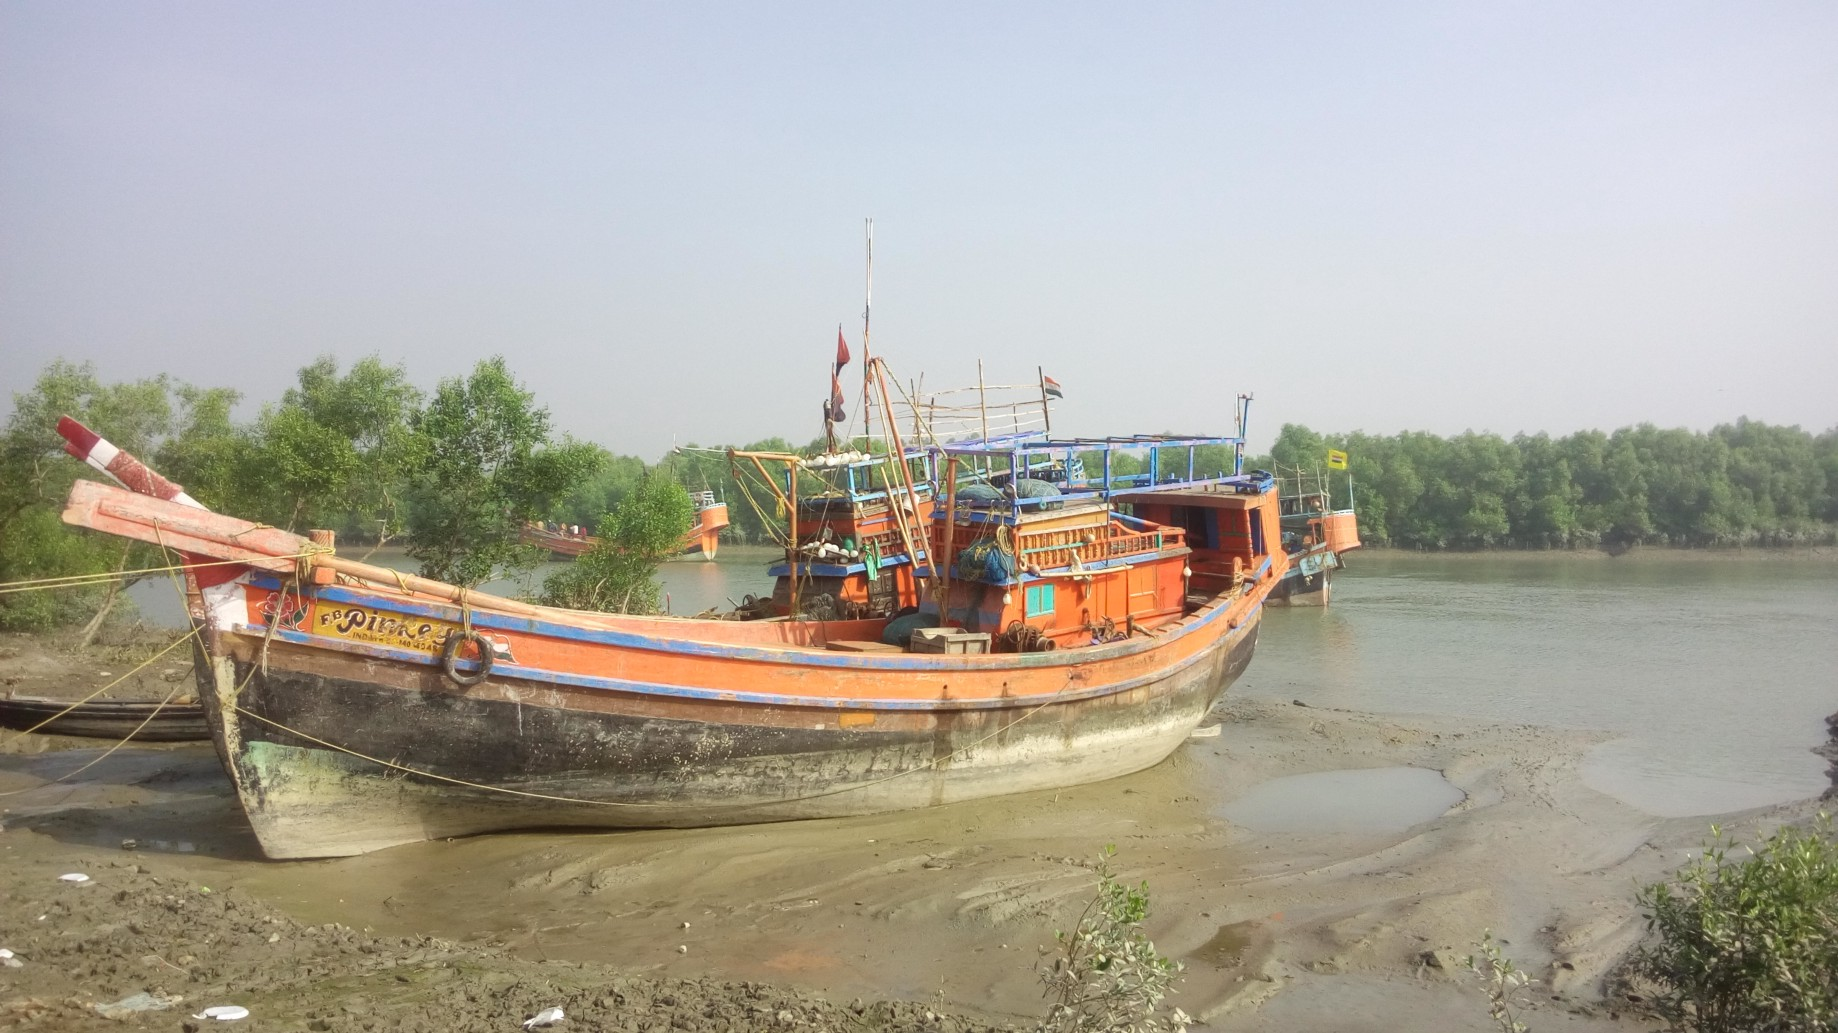 The fishing boat,the local fishermen's transport to their office